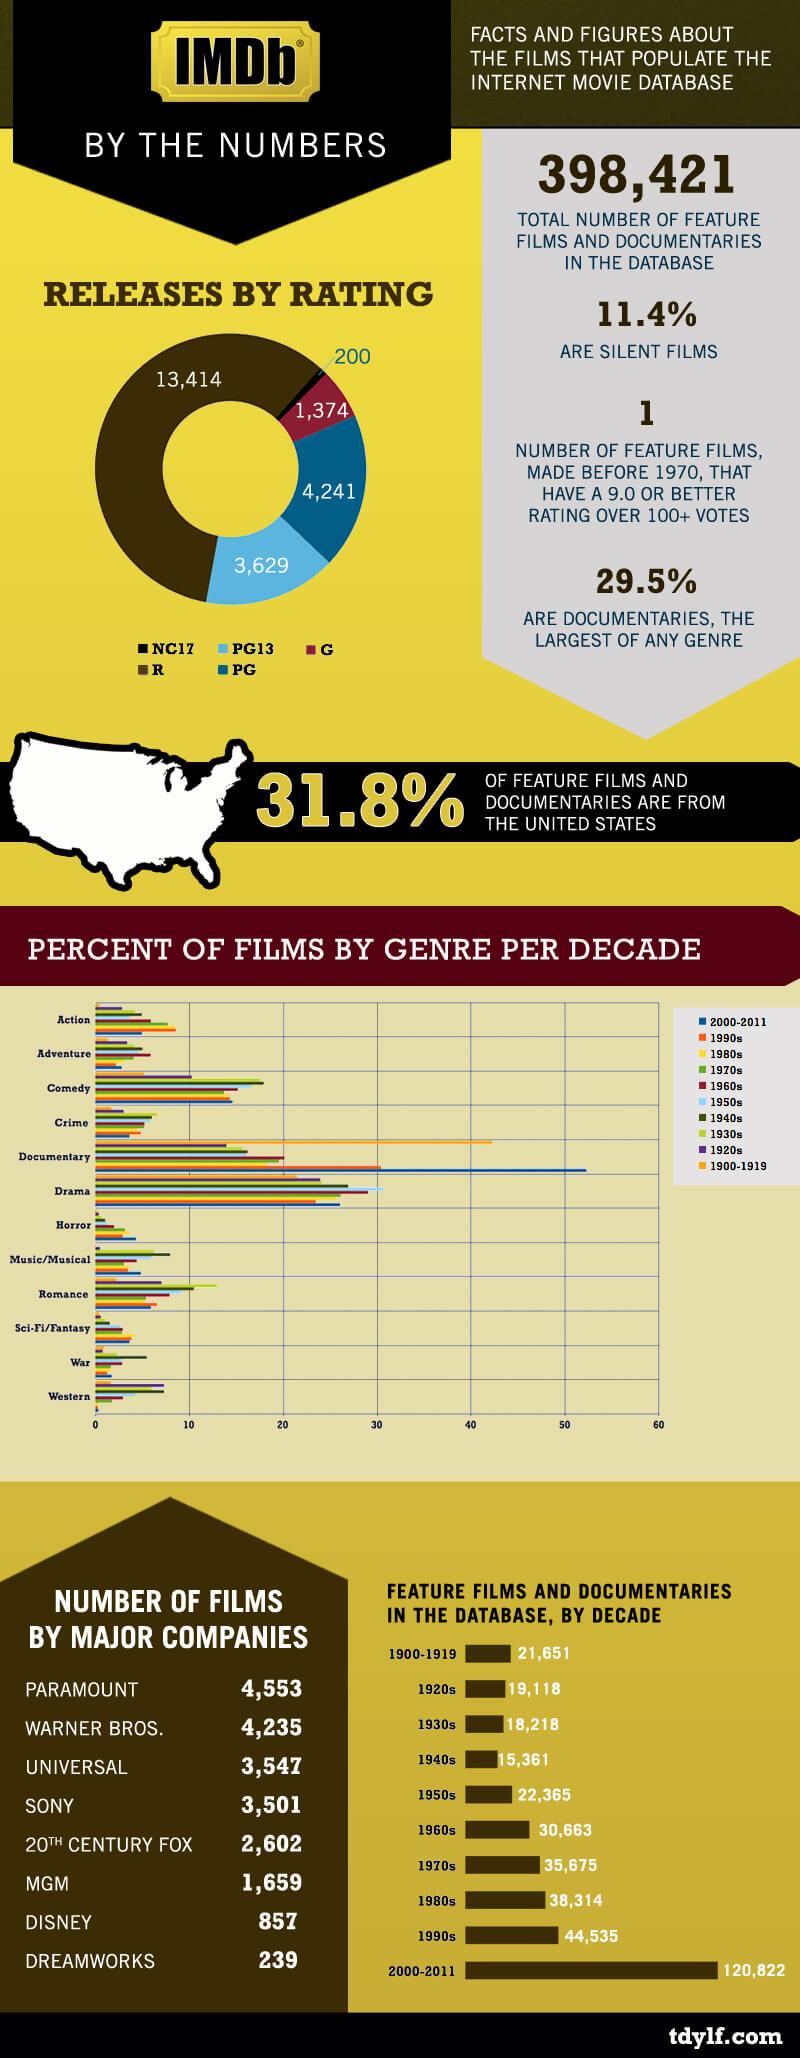 IMDB by the Numbers Infographic